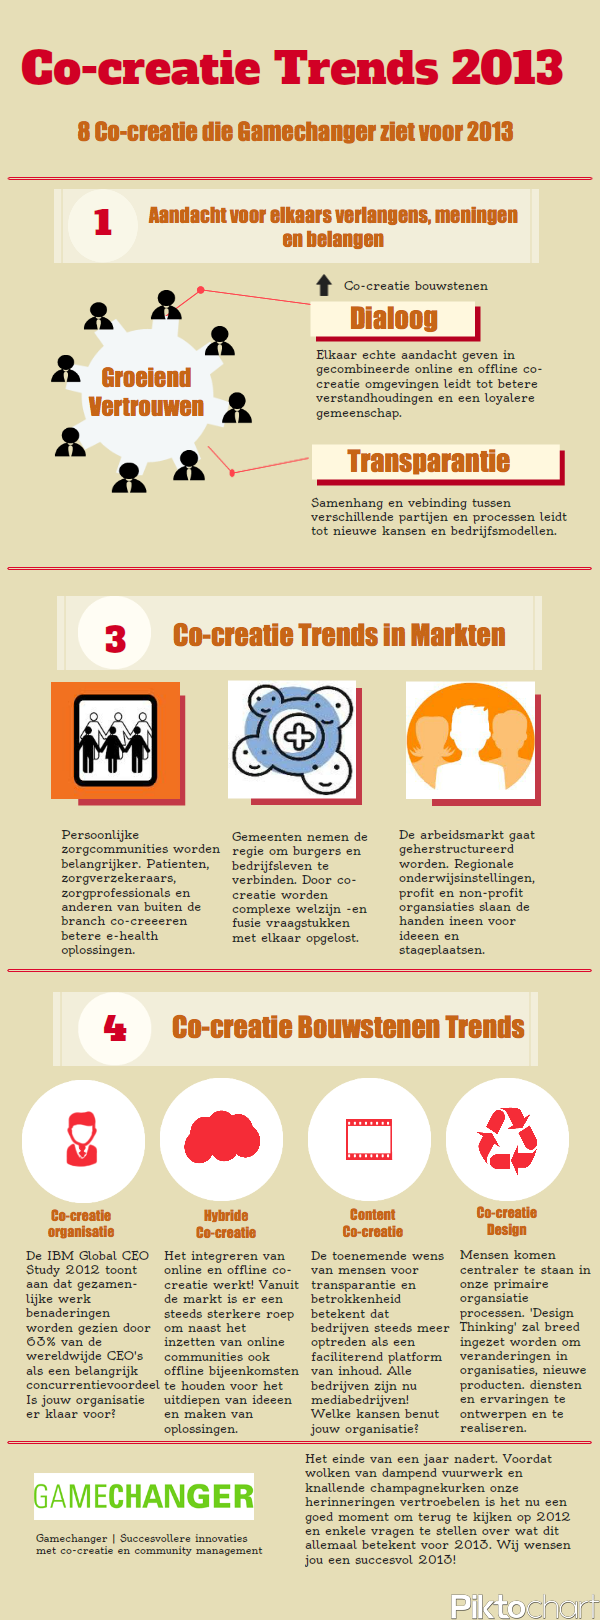 Gamechanger co-creatie trends 2013